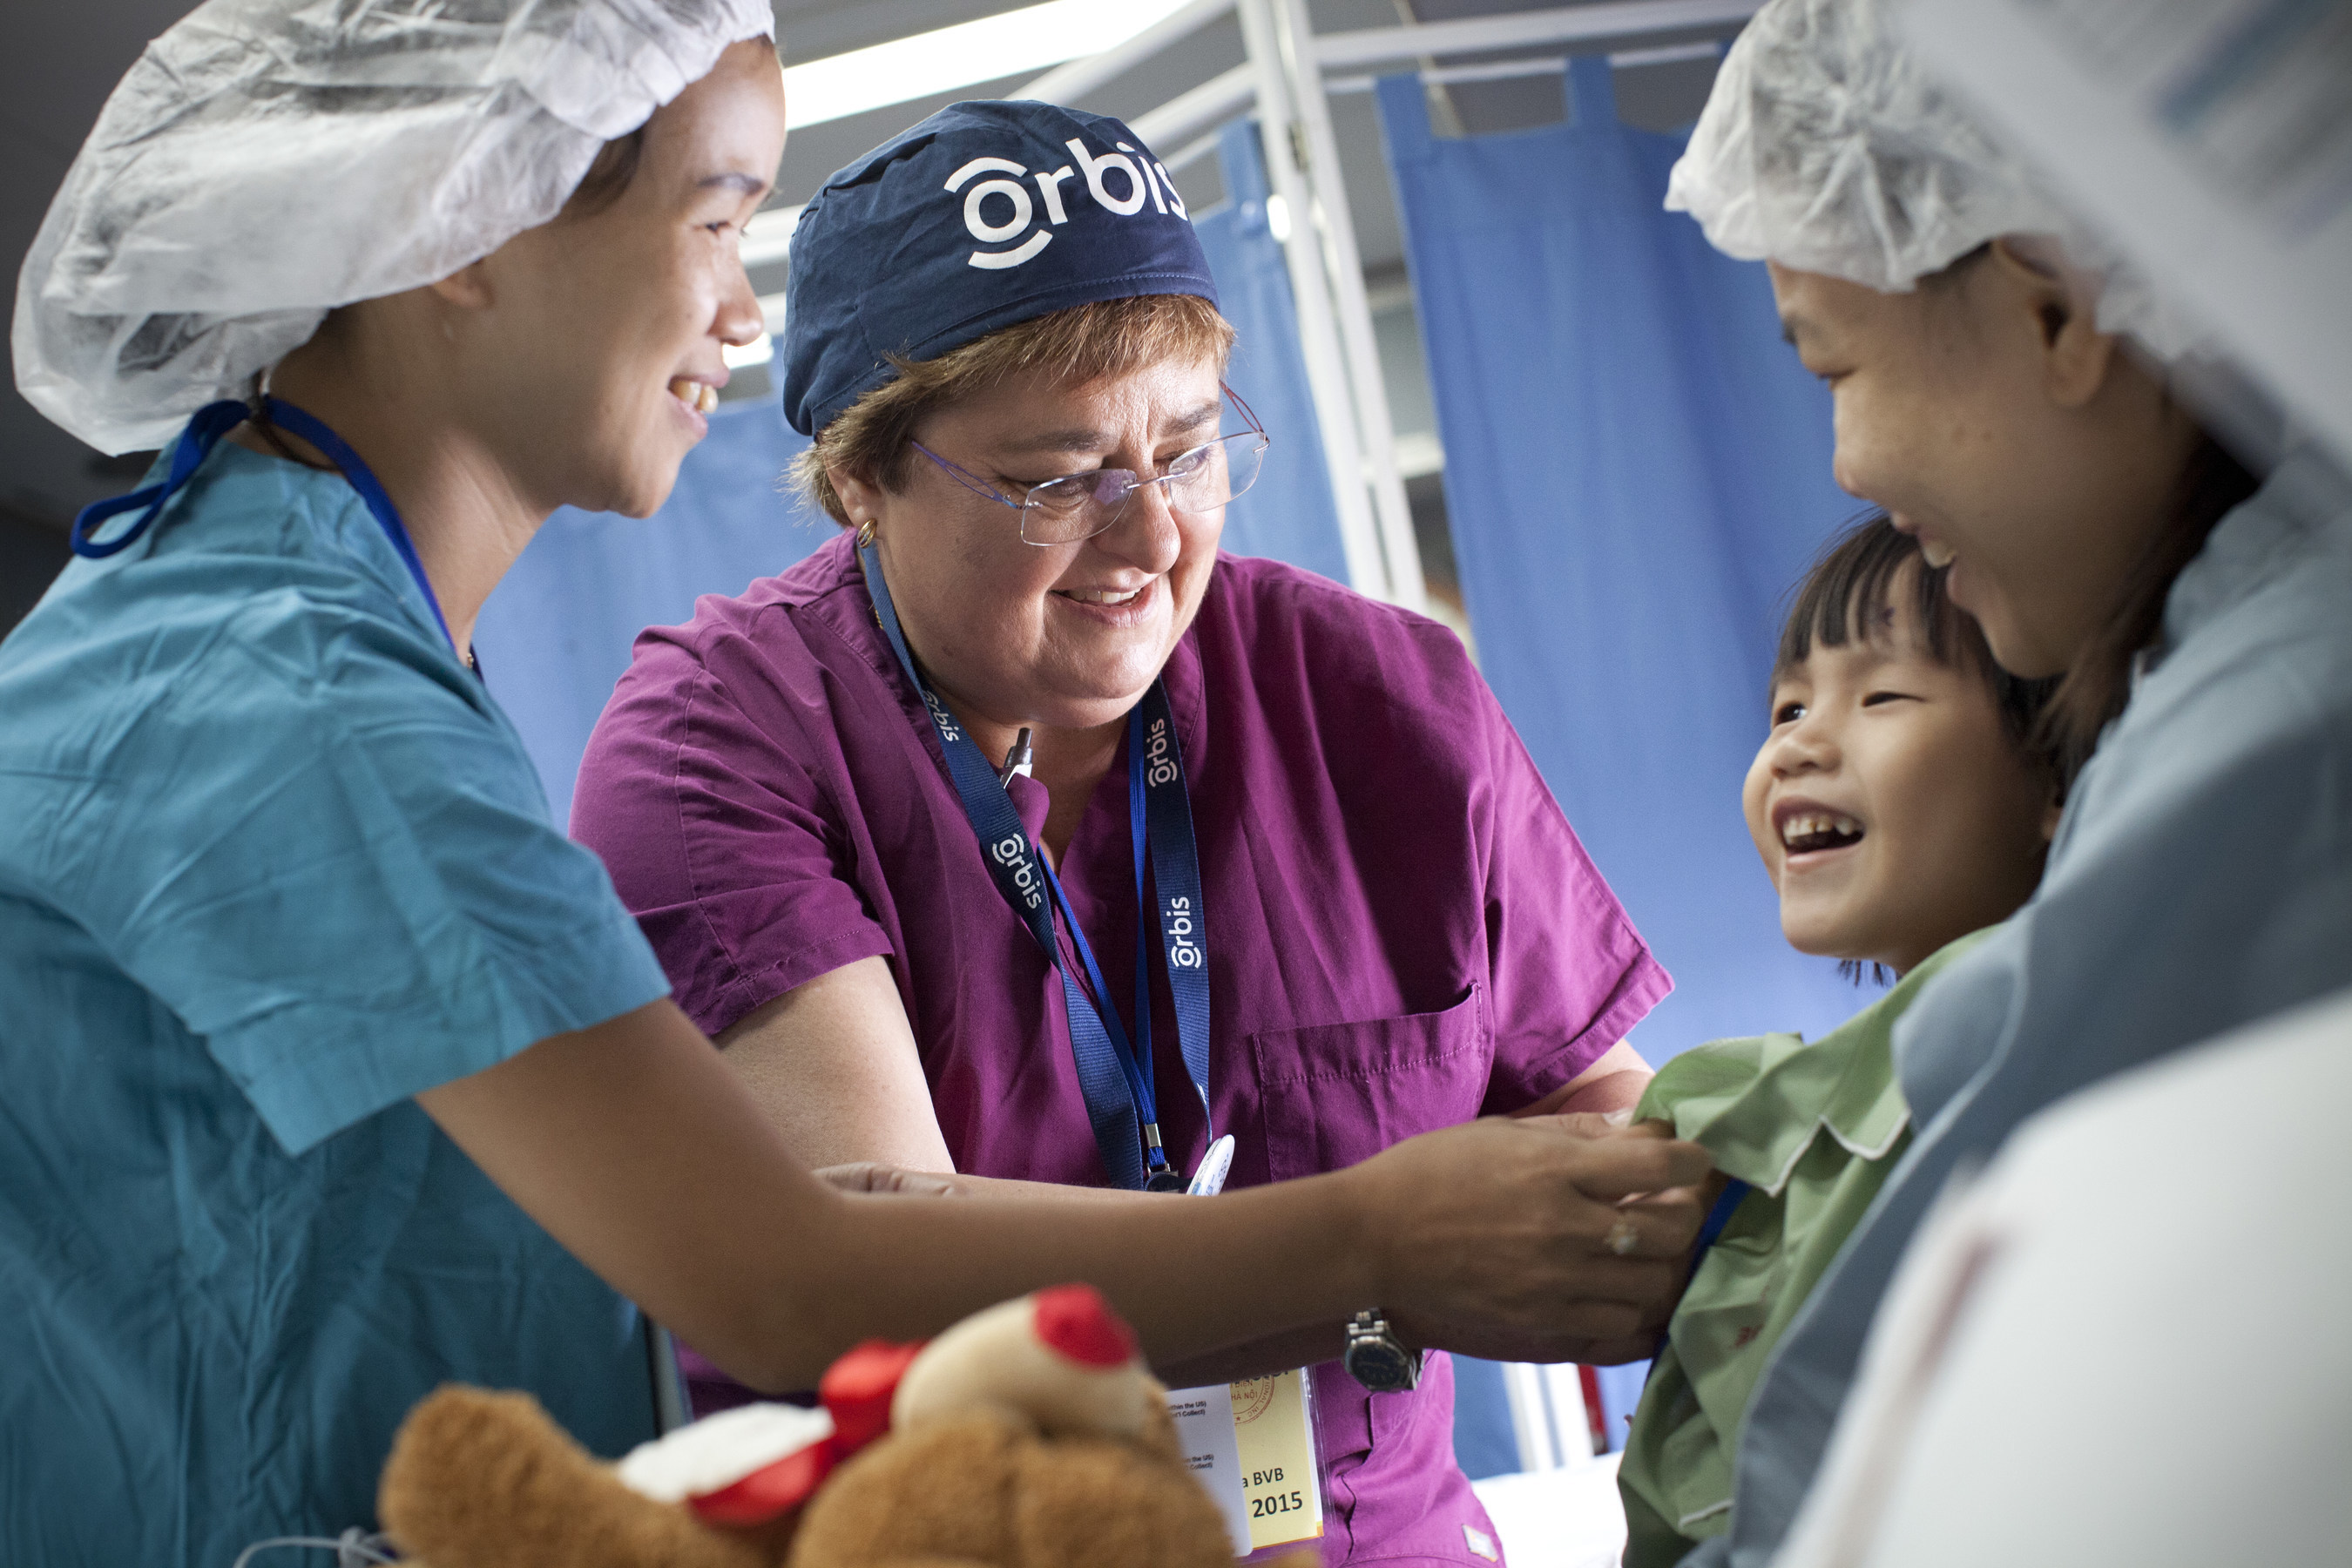 Orbis volunteer ophthalmic nurse, Cherelyn Victor, RN, works in the FEH recovery room to prepare Minh, 4, for treatment during the May 2015 FEH program held in Hue, Vietnam. Learn more: orbis.org (photo: Geoff Bugbee/Orbis).